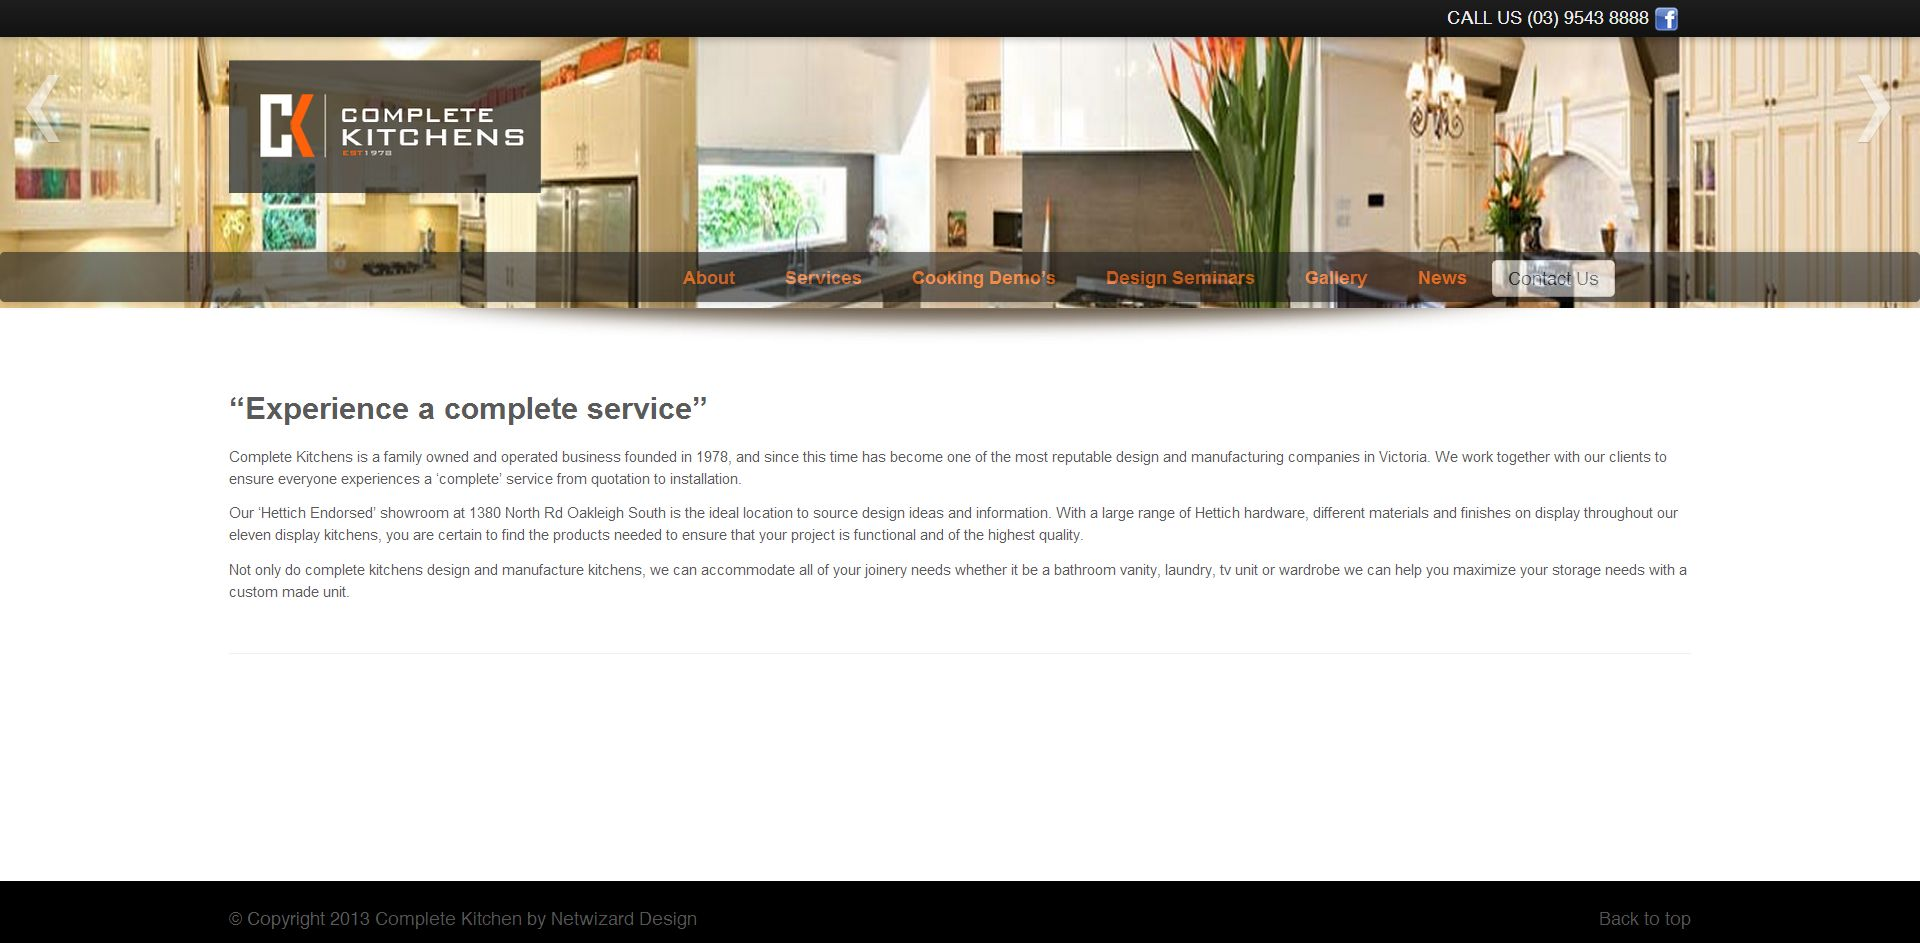 Complete Kitchens Australia Pty Ltd | EllahWorks.